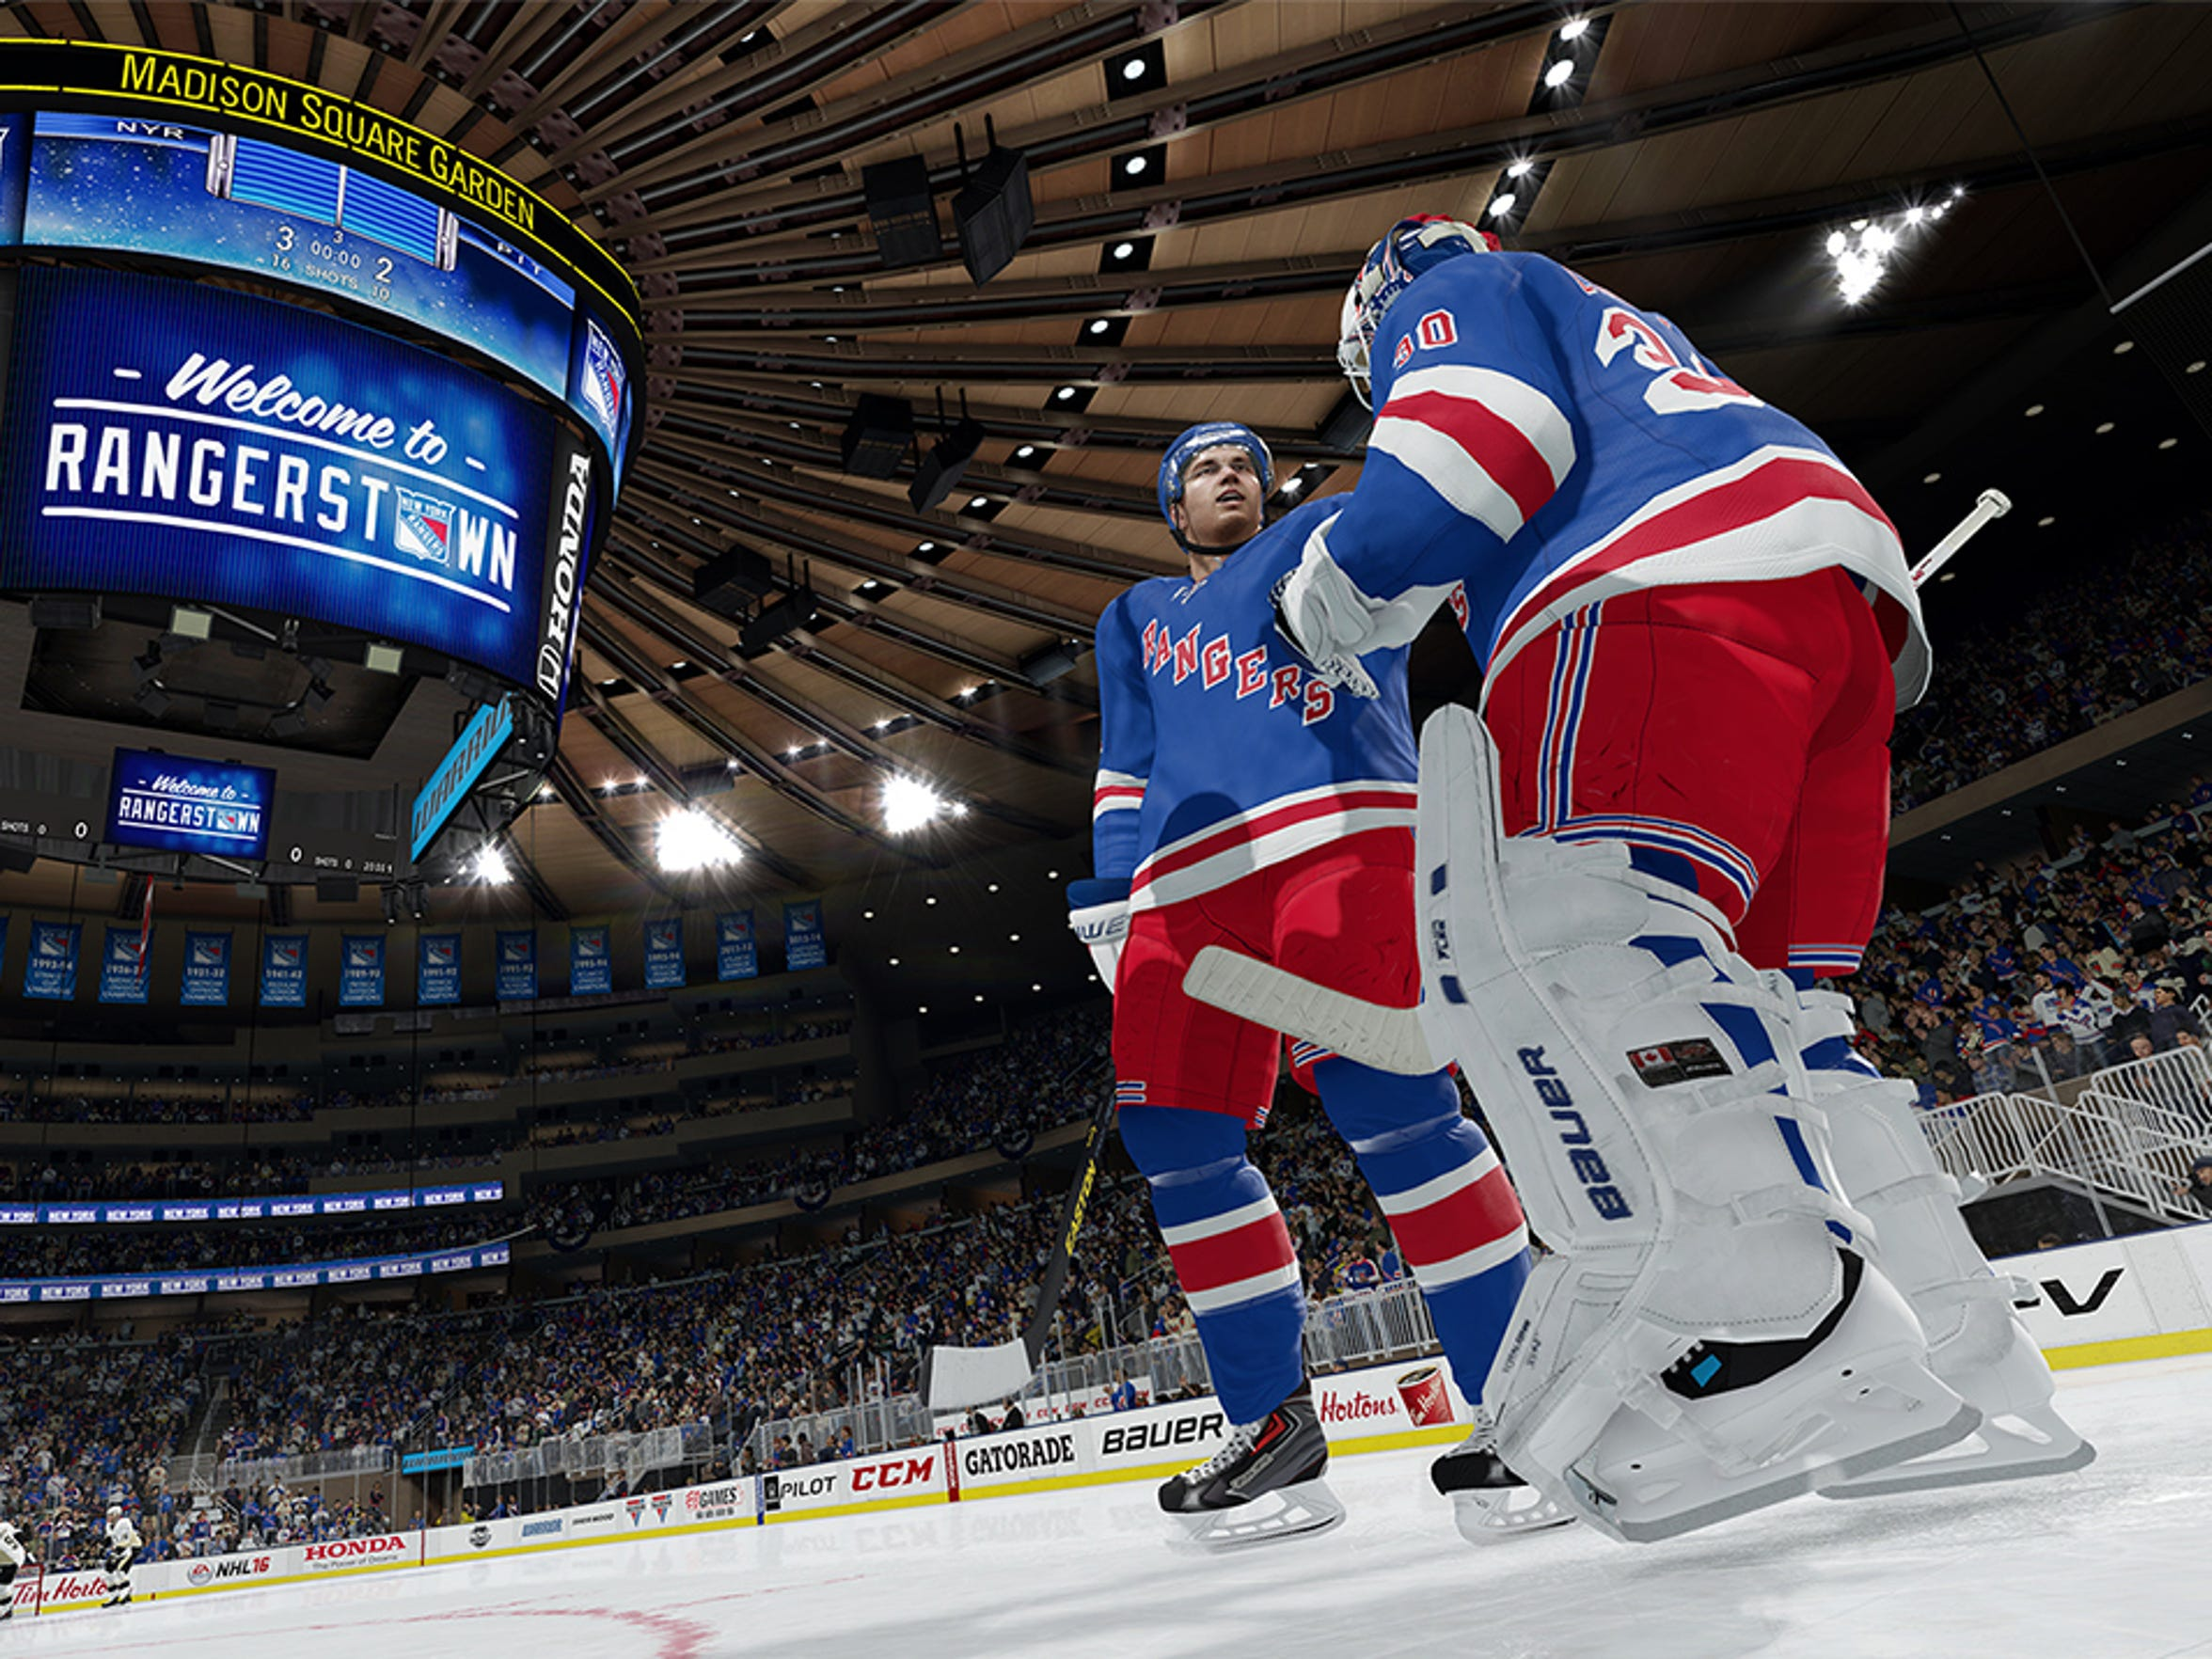 NHL 16 makes a comeback on the ice, adding modes that